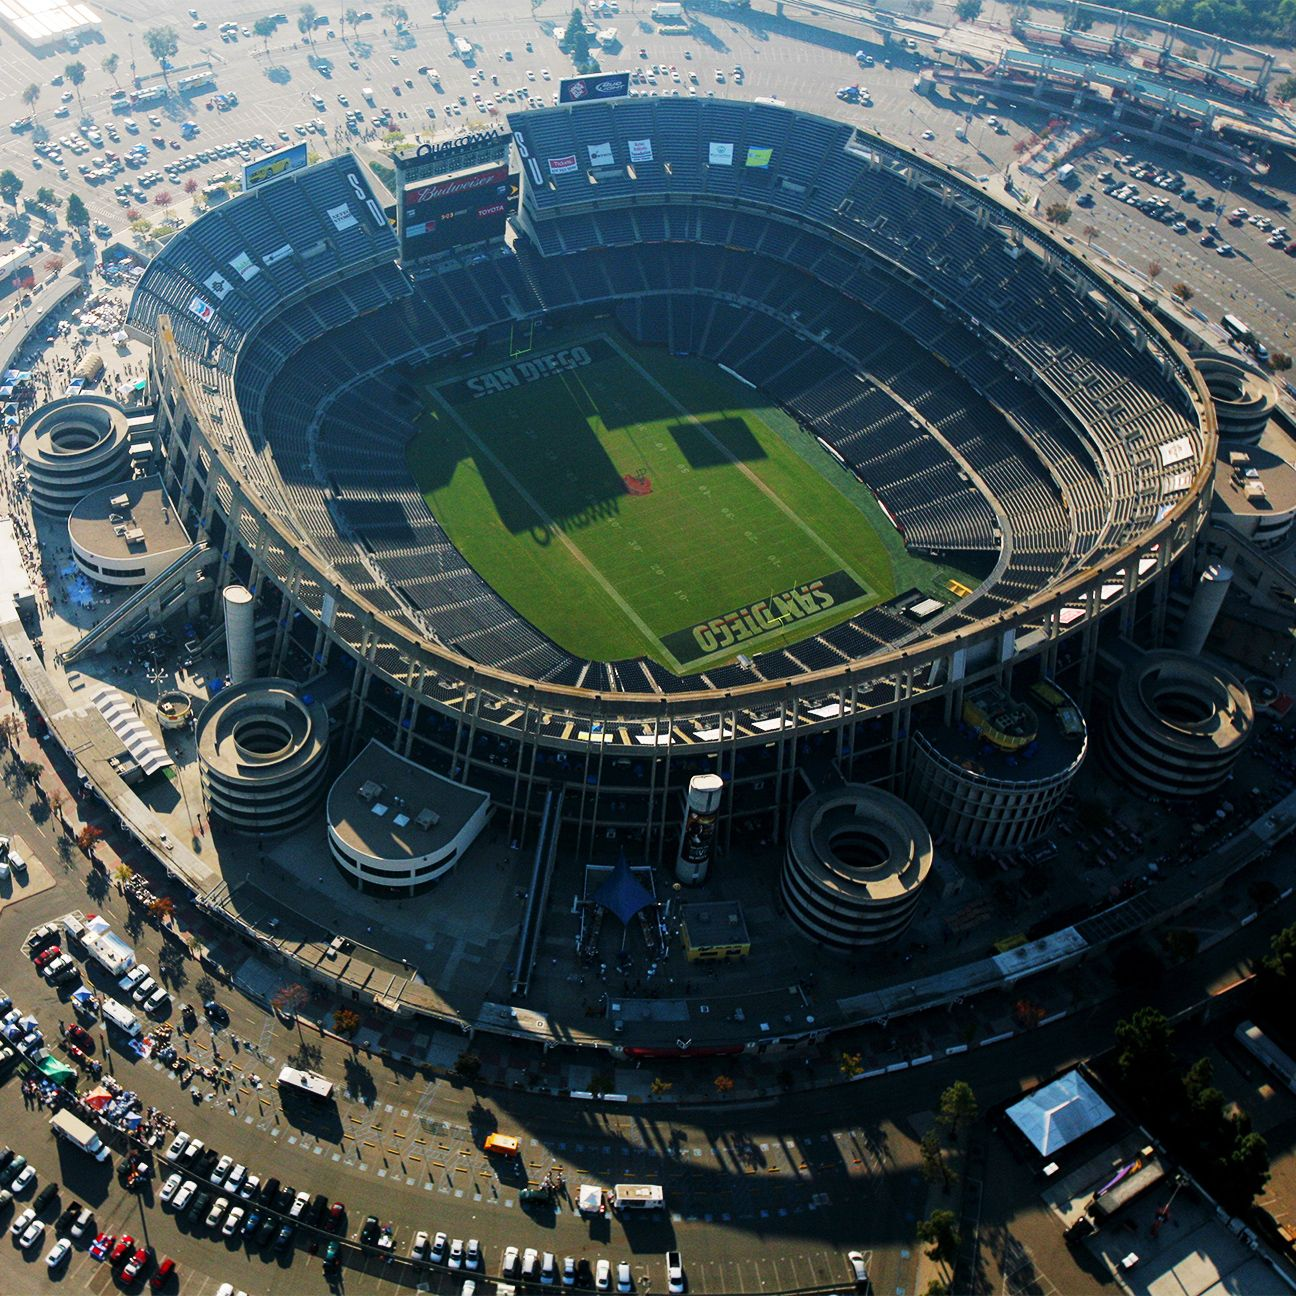 San Diego Chargers Home Stadium: I?img=%2Fphoto%2F2015%2F0216%2Fnfl_g_qualcomm01jr_D